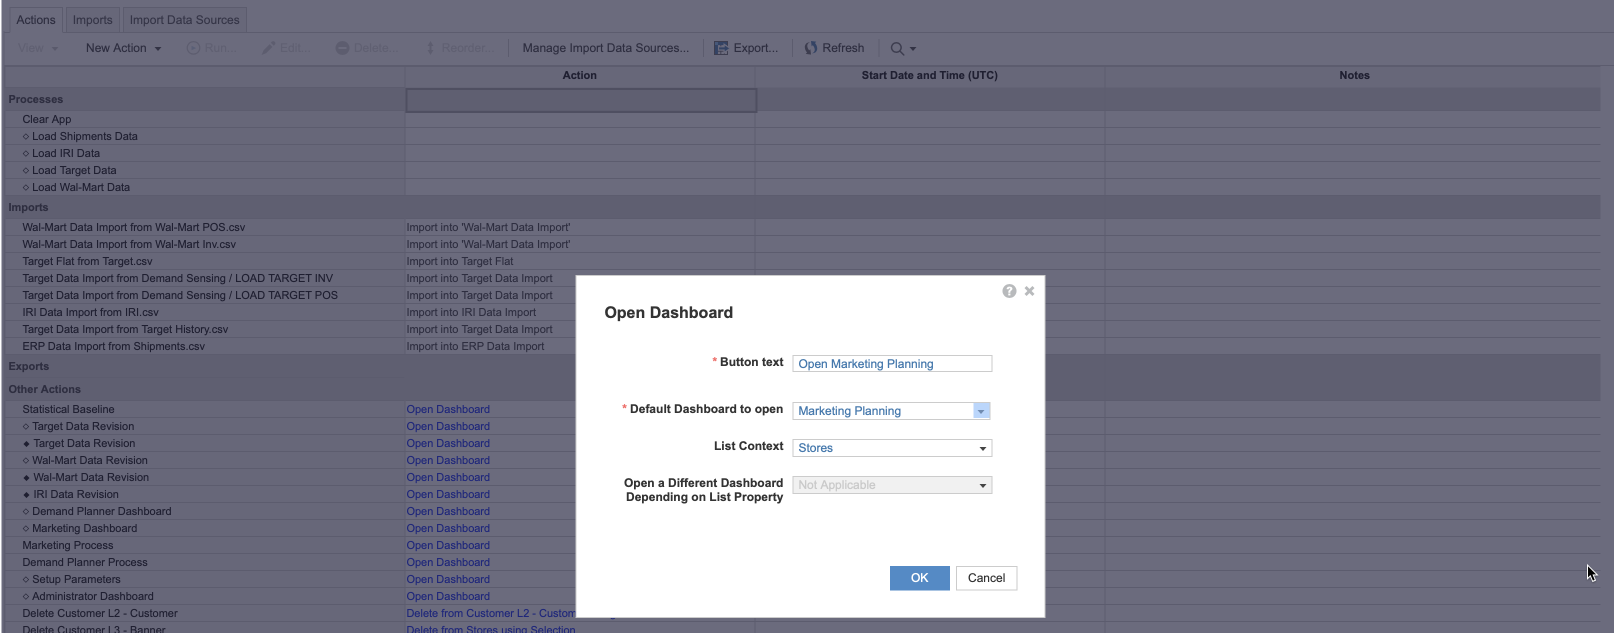 The Open Dashboard dialog with fields completed for an action that uses a context list. Open Marketing Planning is entered in the Button text field, Marketing Planning is selected from the Default Dashboard to open dropdown, and Stores is selected in from the List Context field.